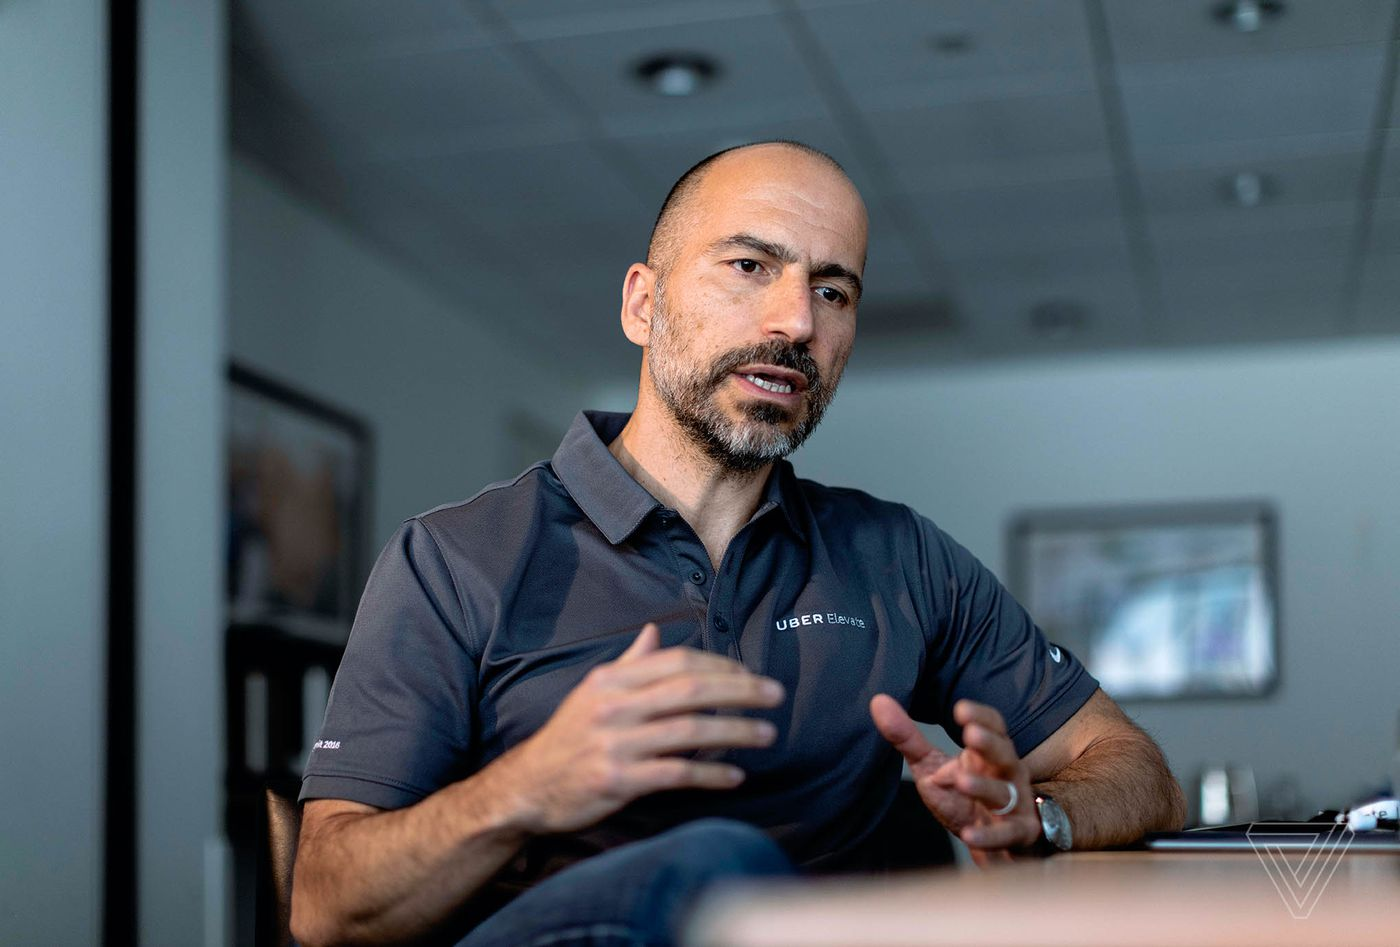 Uber CEO: our future won't just be cars - The Verge